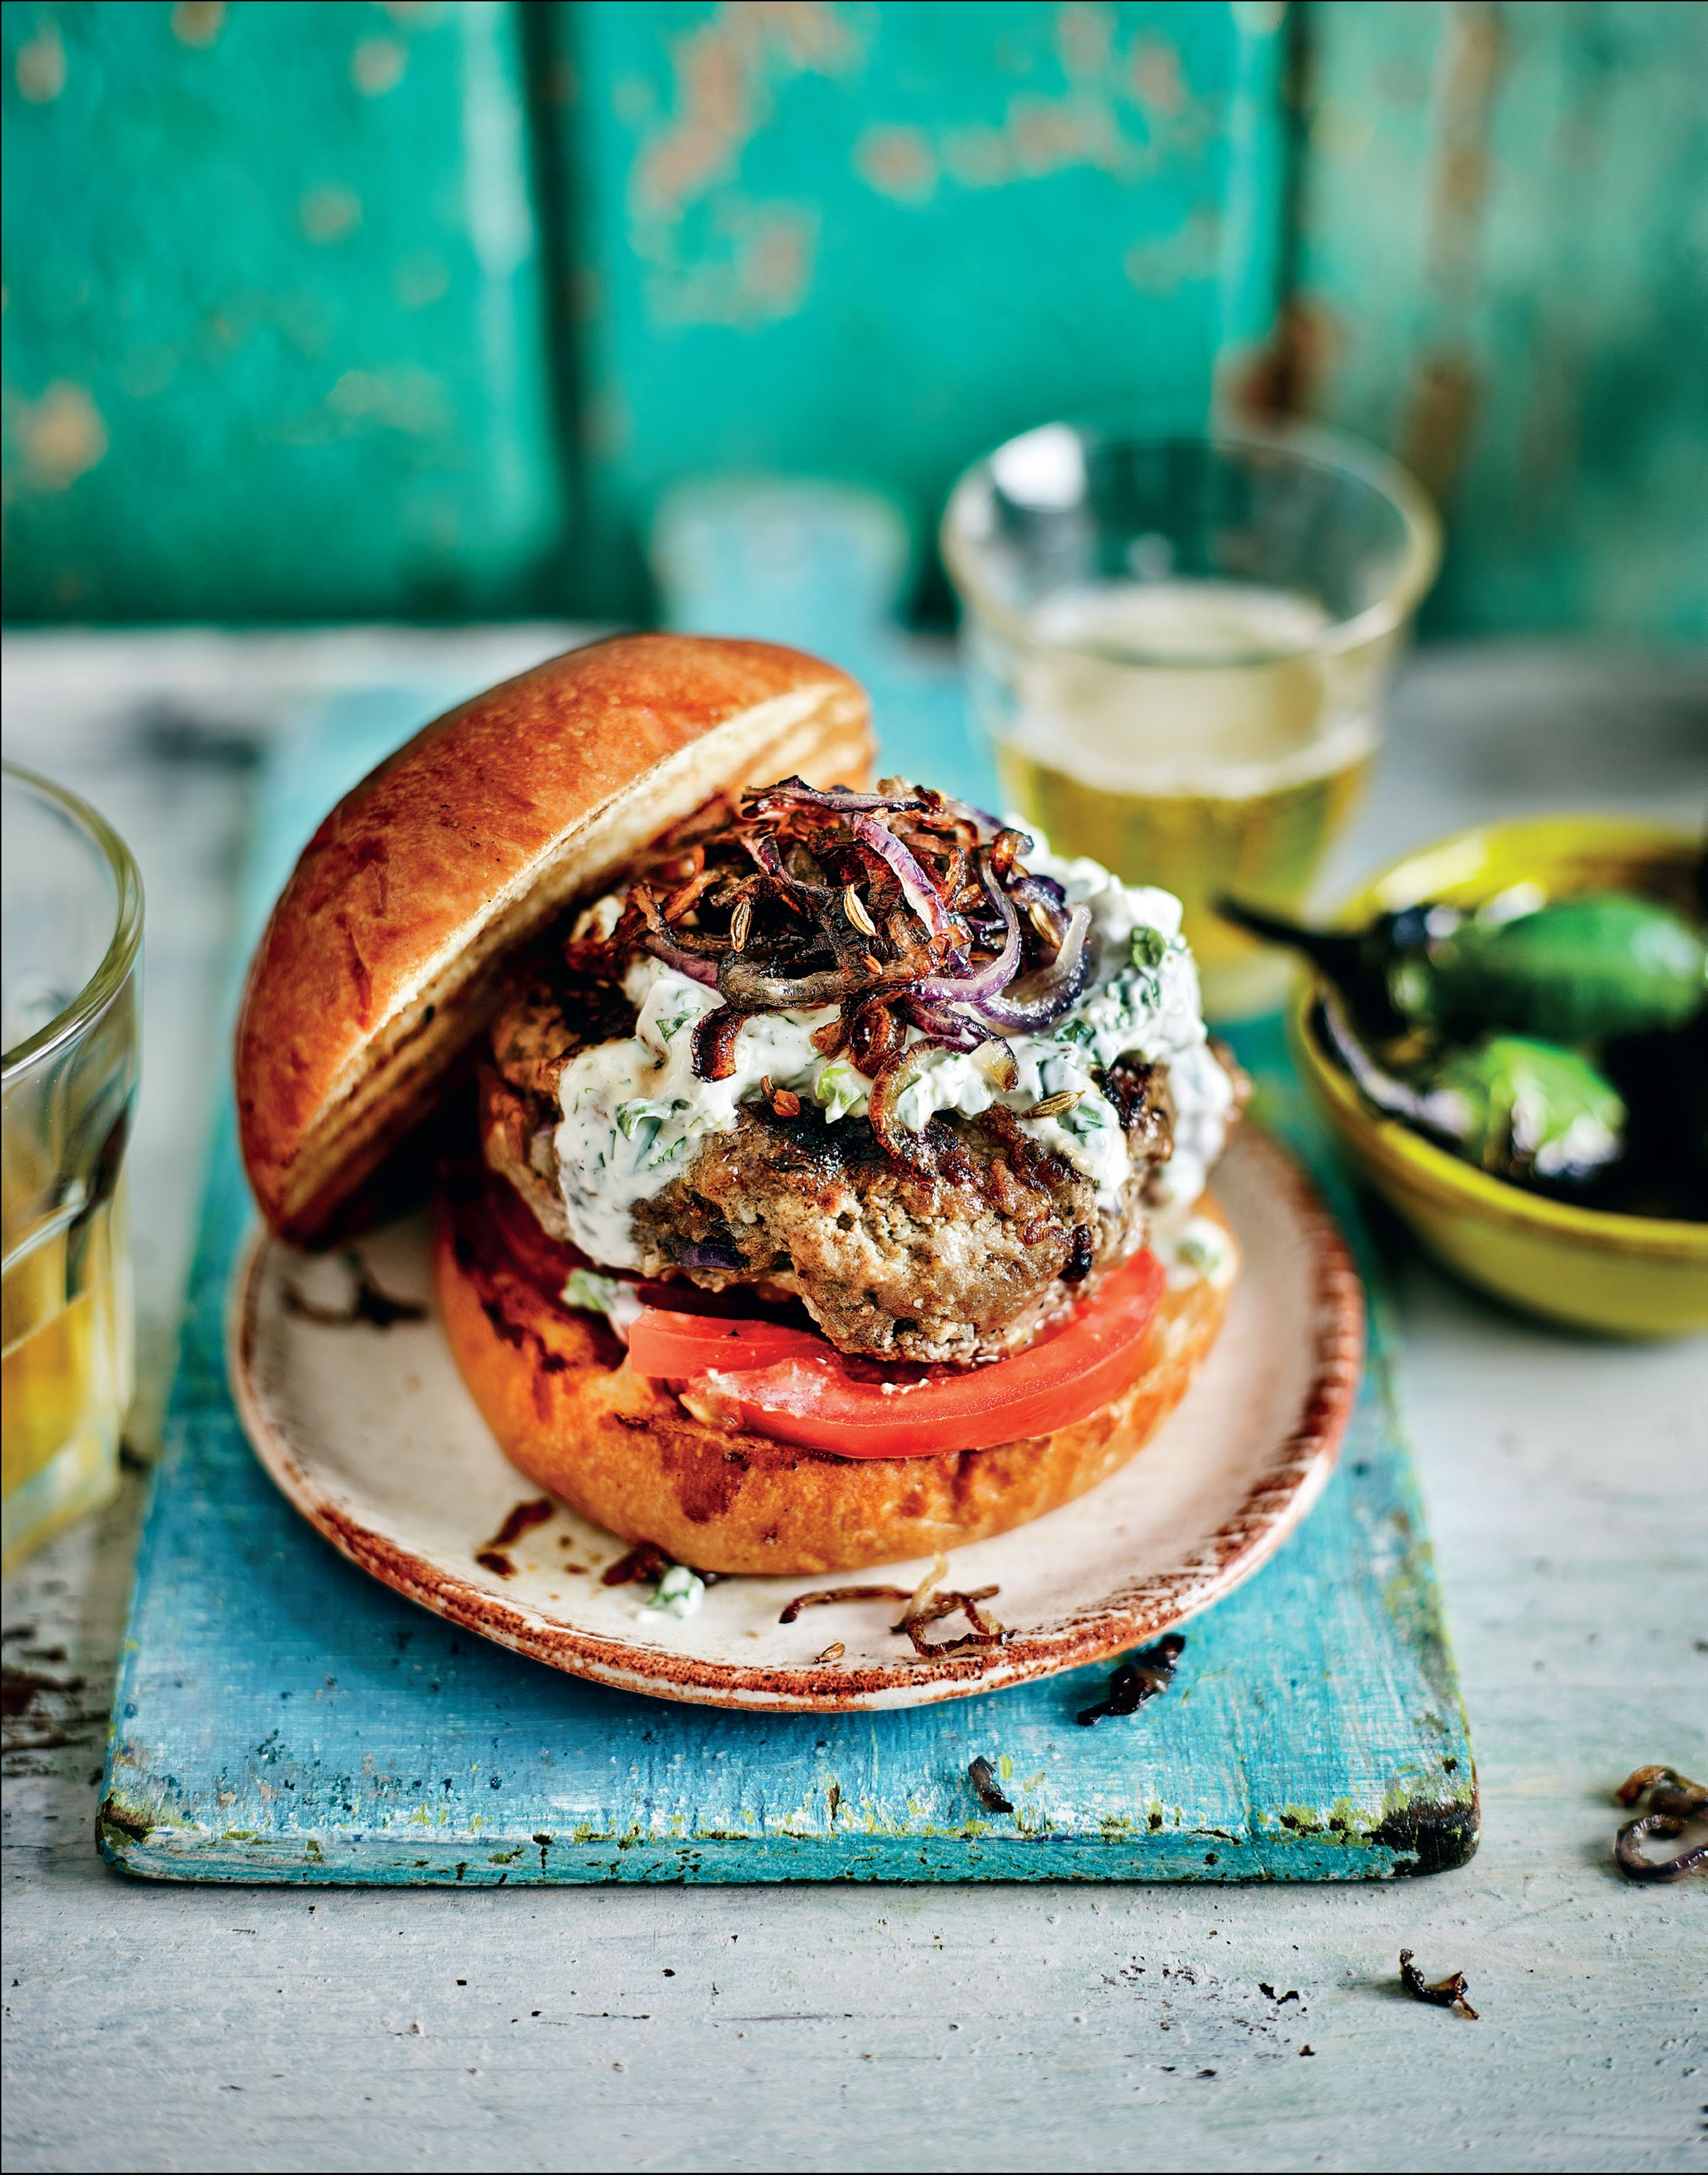 Best-ever burgers with spiced onions